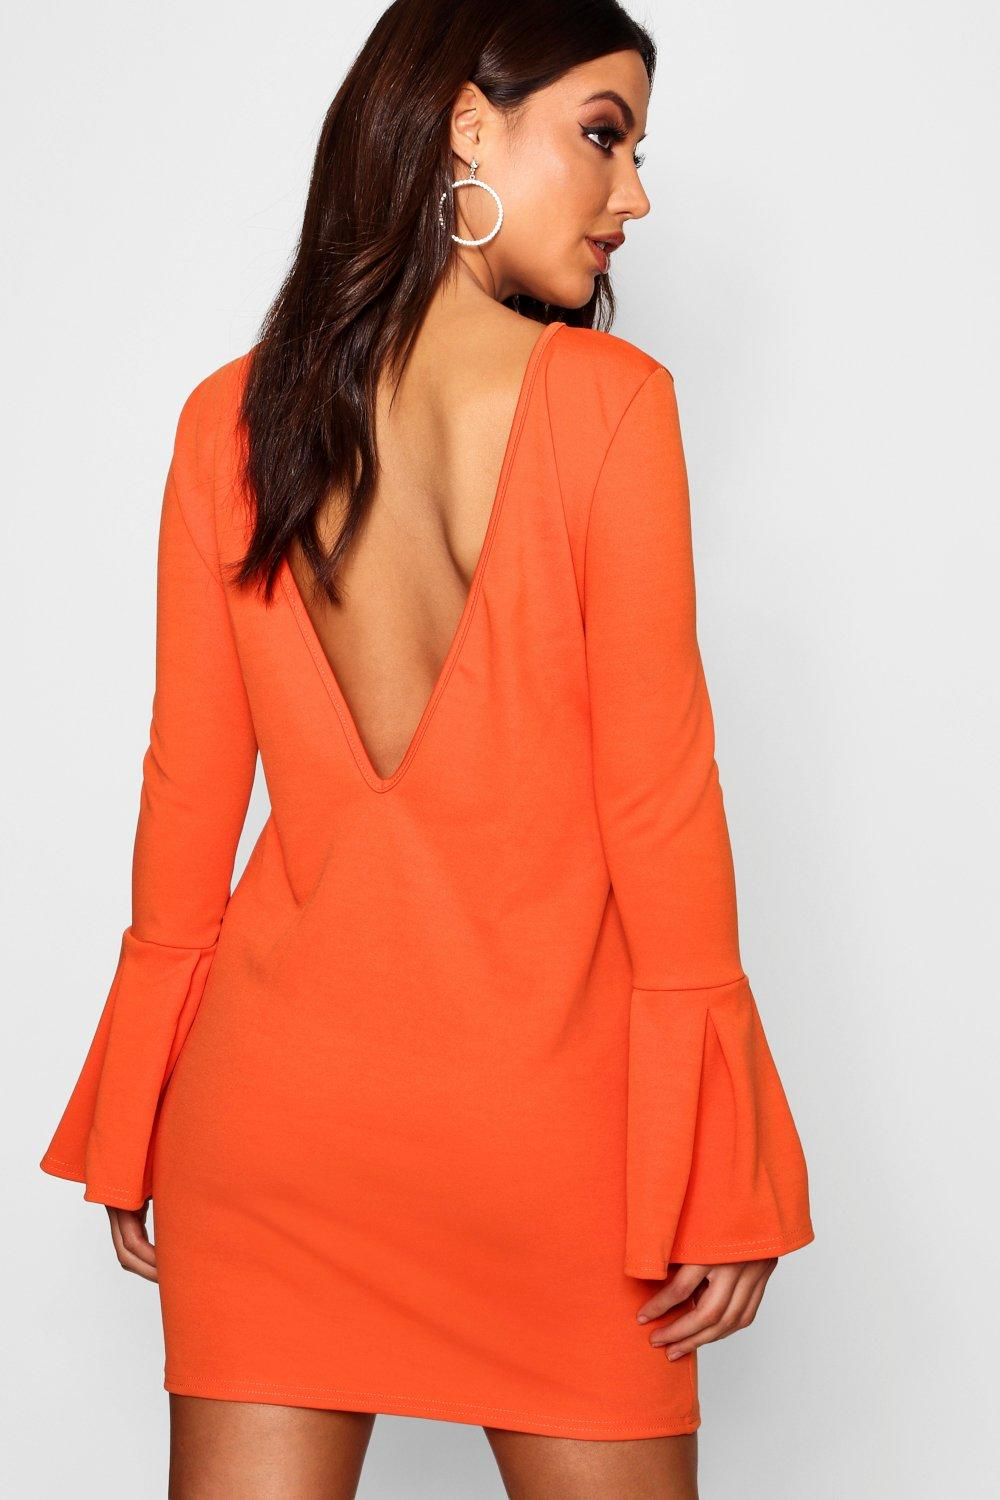 Buy Low dress back picture trends